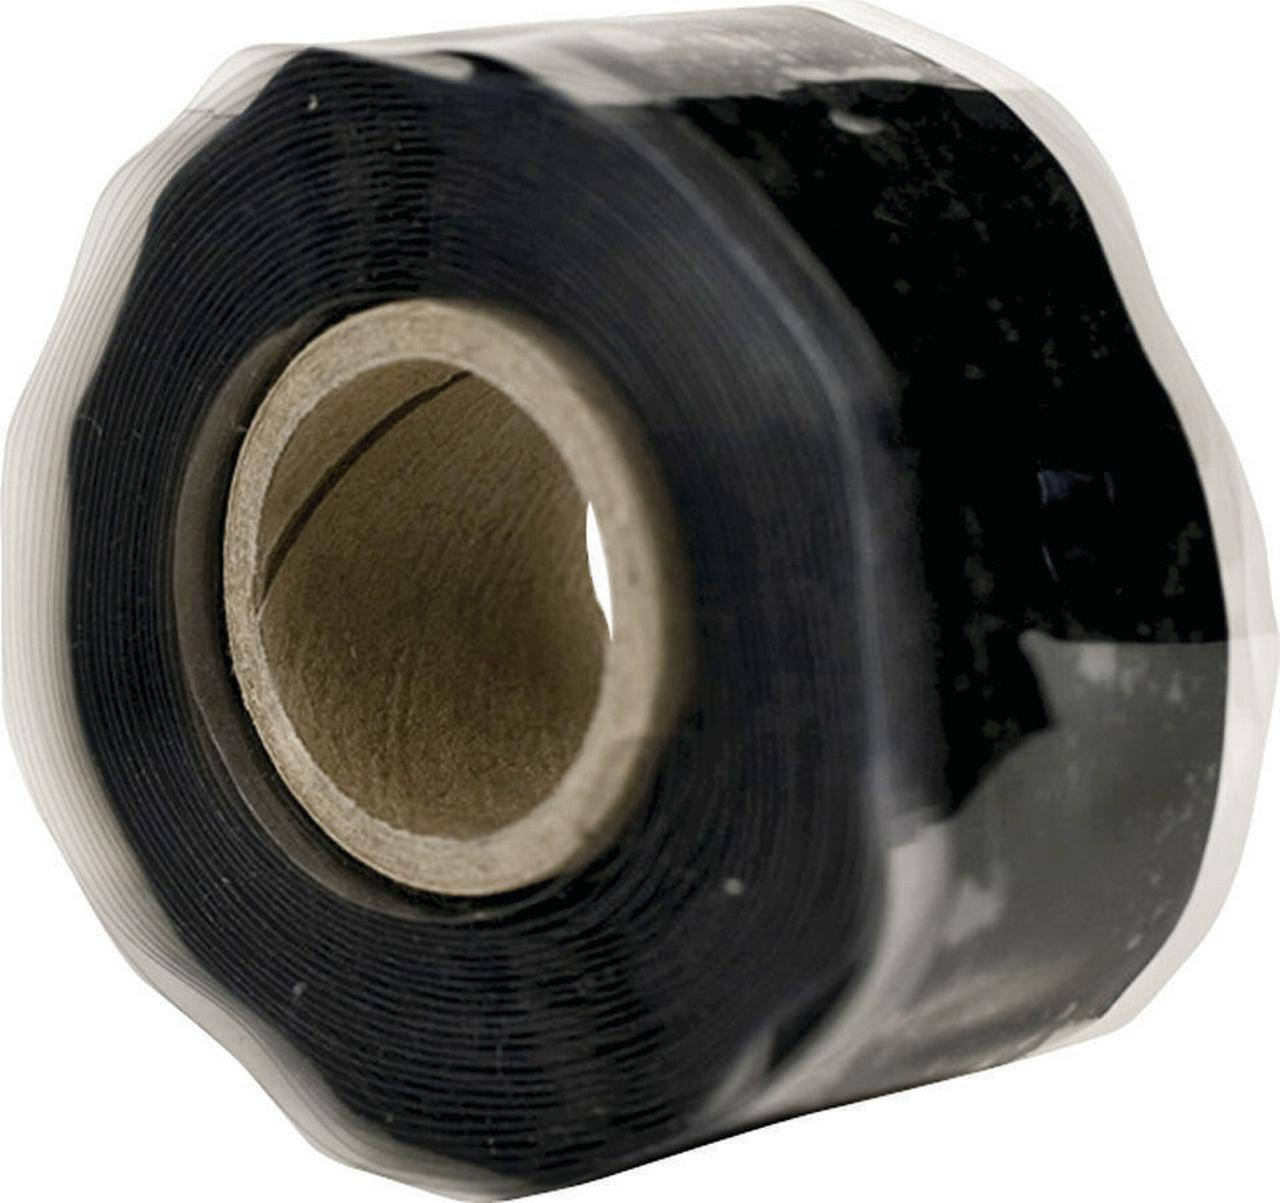 "Harbor USC01 Rescue Tape 1""x12''x20mm Silicone Black"